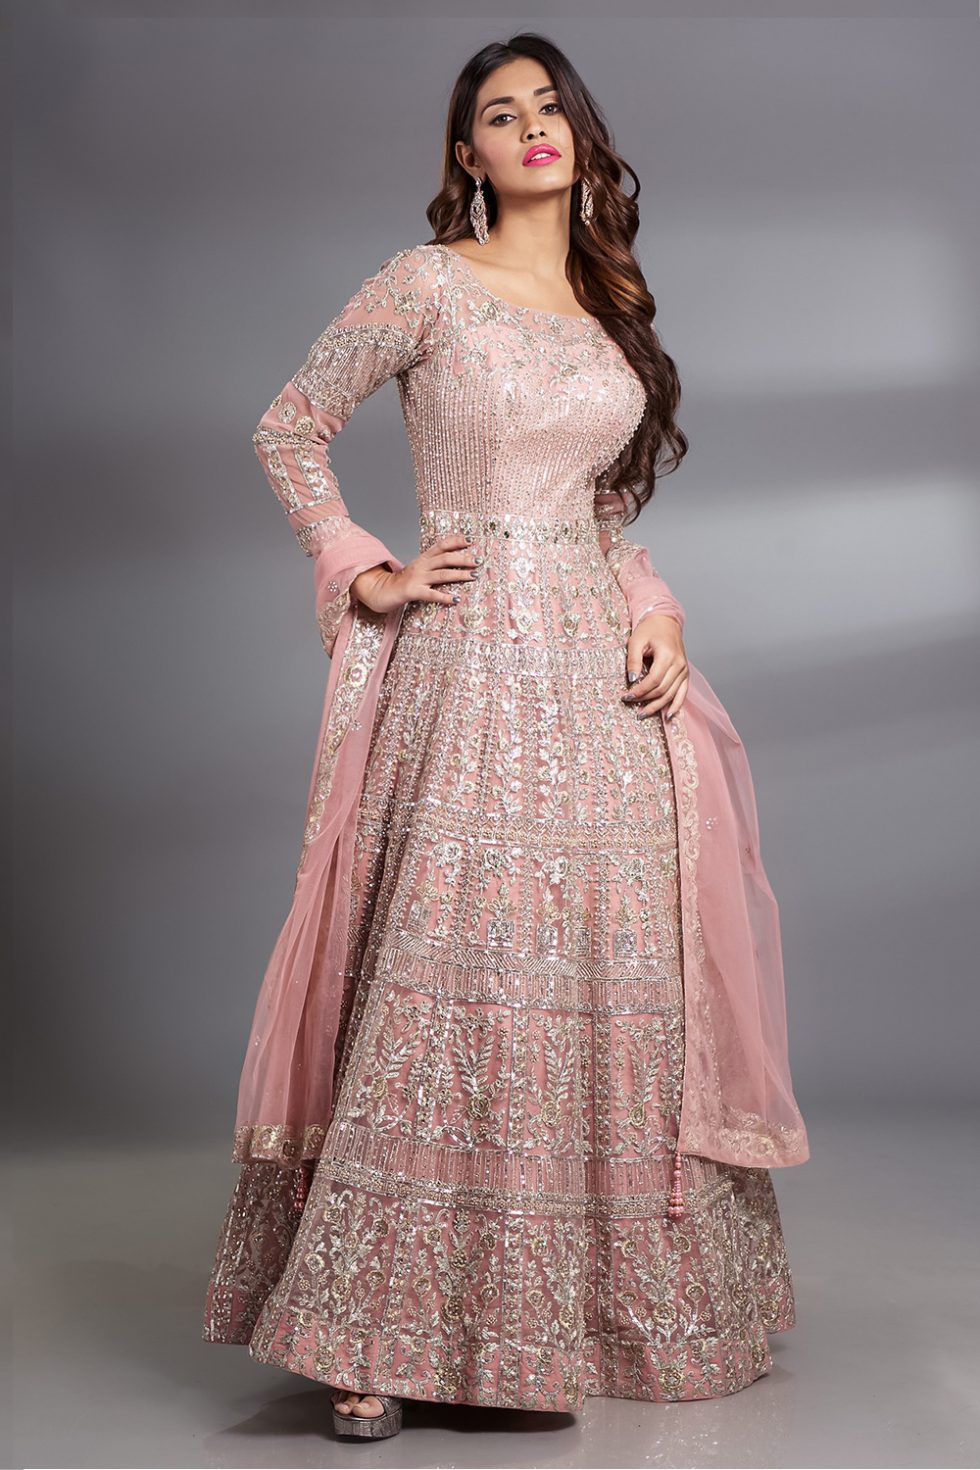 Peachish pink Anarkali gown set with silver embroidery and embellishments paired with a matching dupatta with butis.